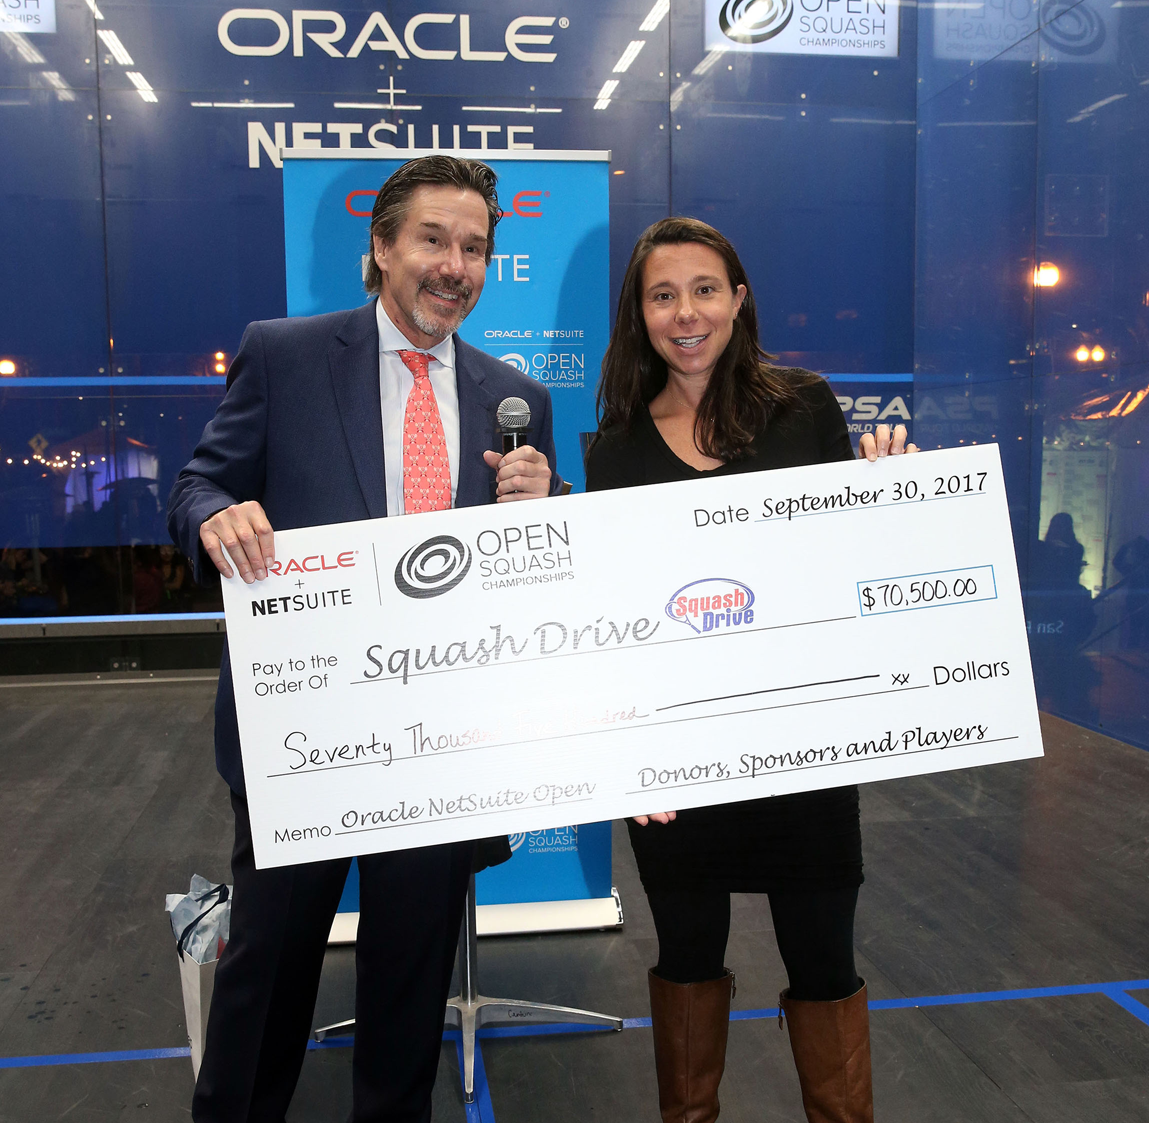 2018 Oracle NetSuite Open to Benefit Local Youth Nonprofit SquashDrive